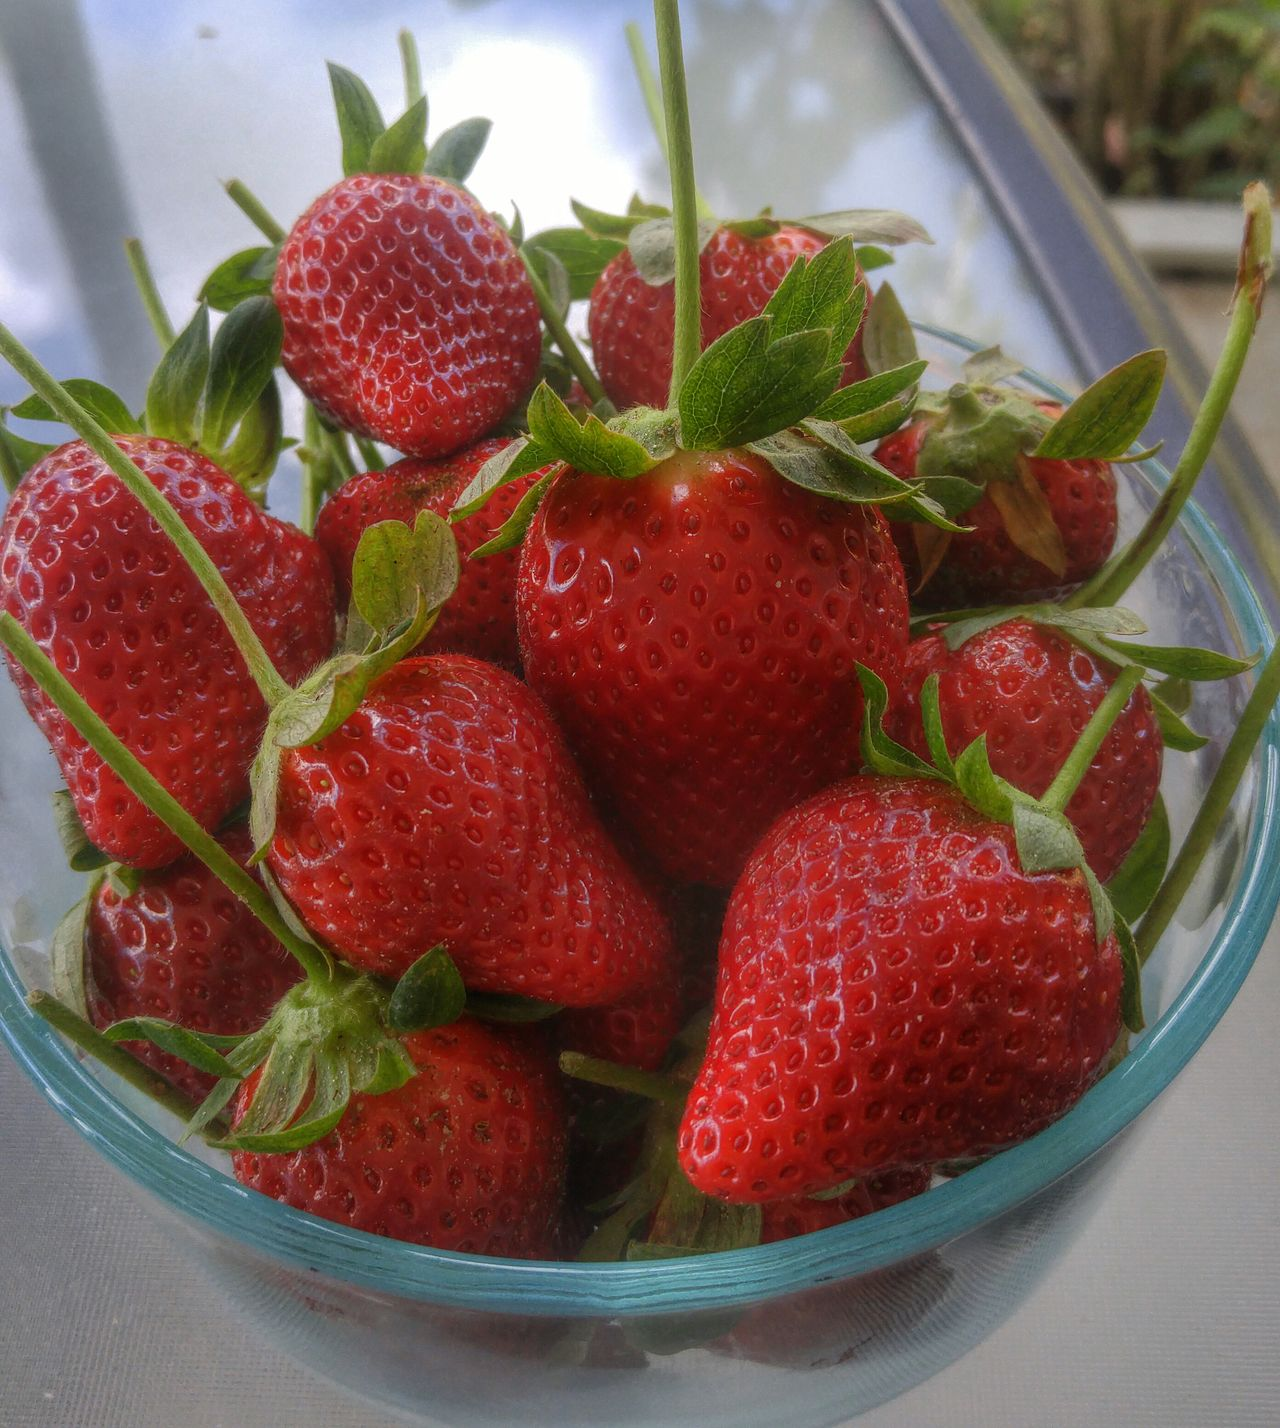 Fruit Strawberry Healthy Eating Freshness Red Food Juicy Berry Fruit Close-up Bowl Food And Drink Natural Breakfast Strawberries Berries Plant Green Freshness Delicious Fruit Tasty Red